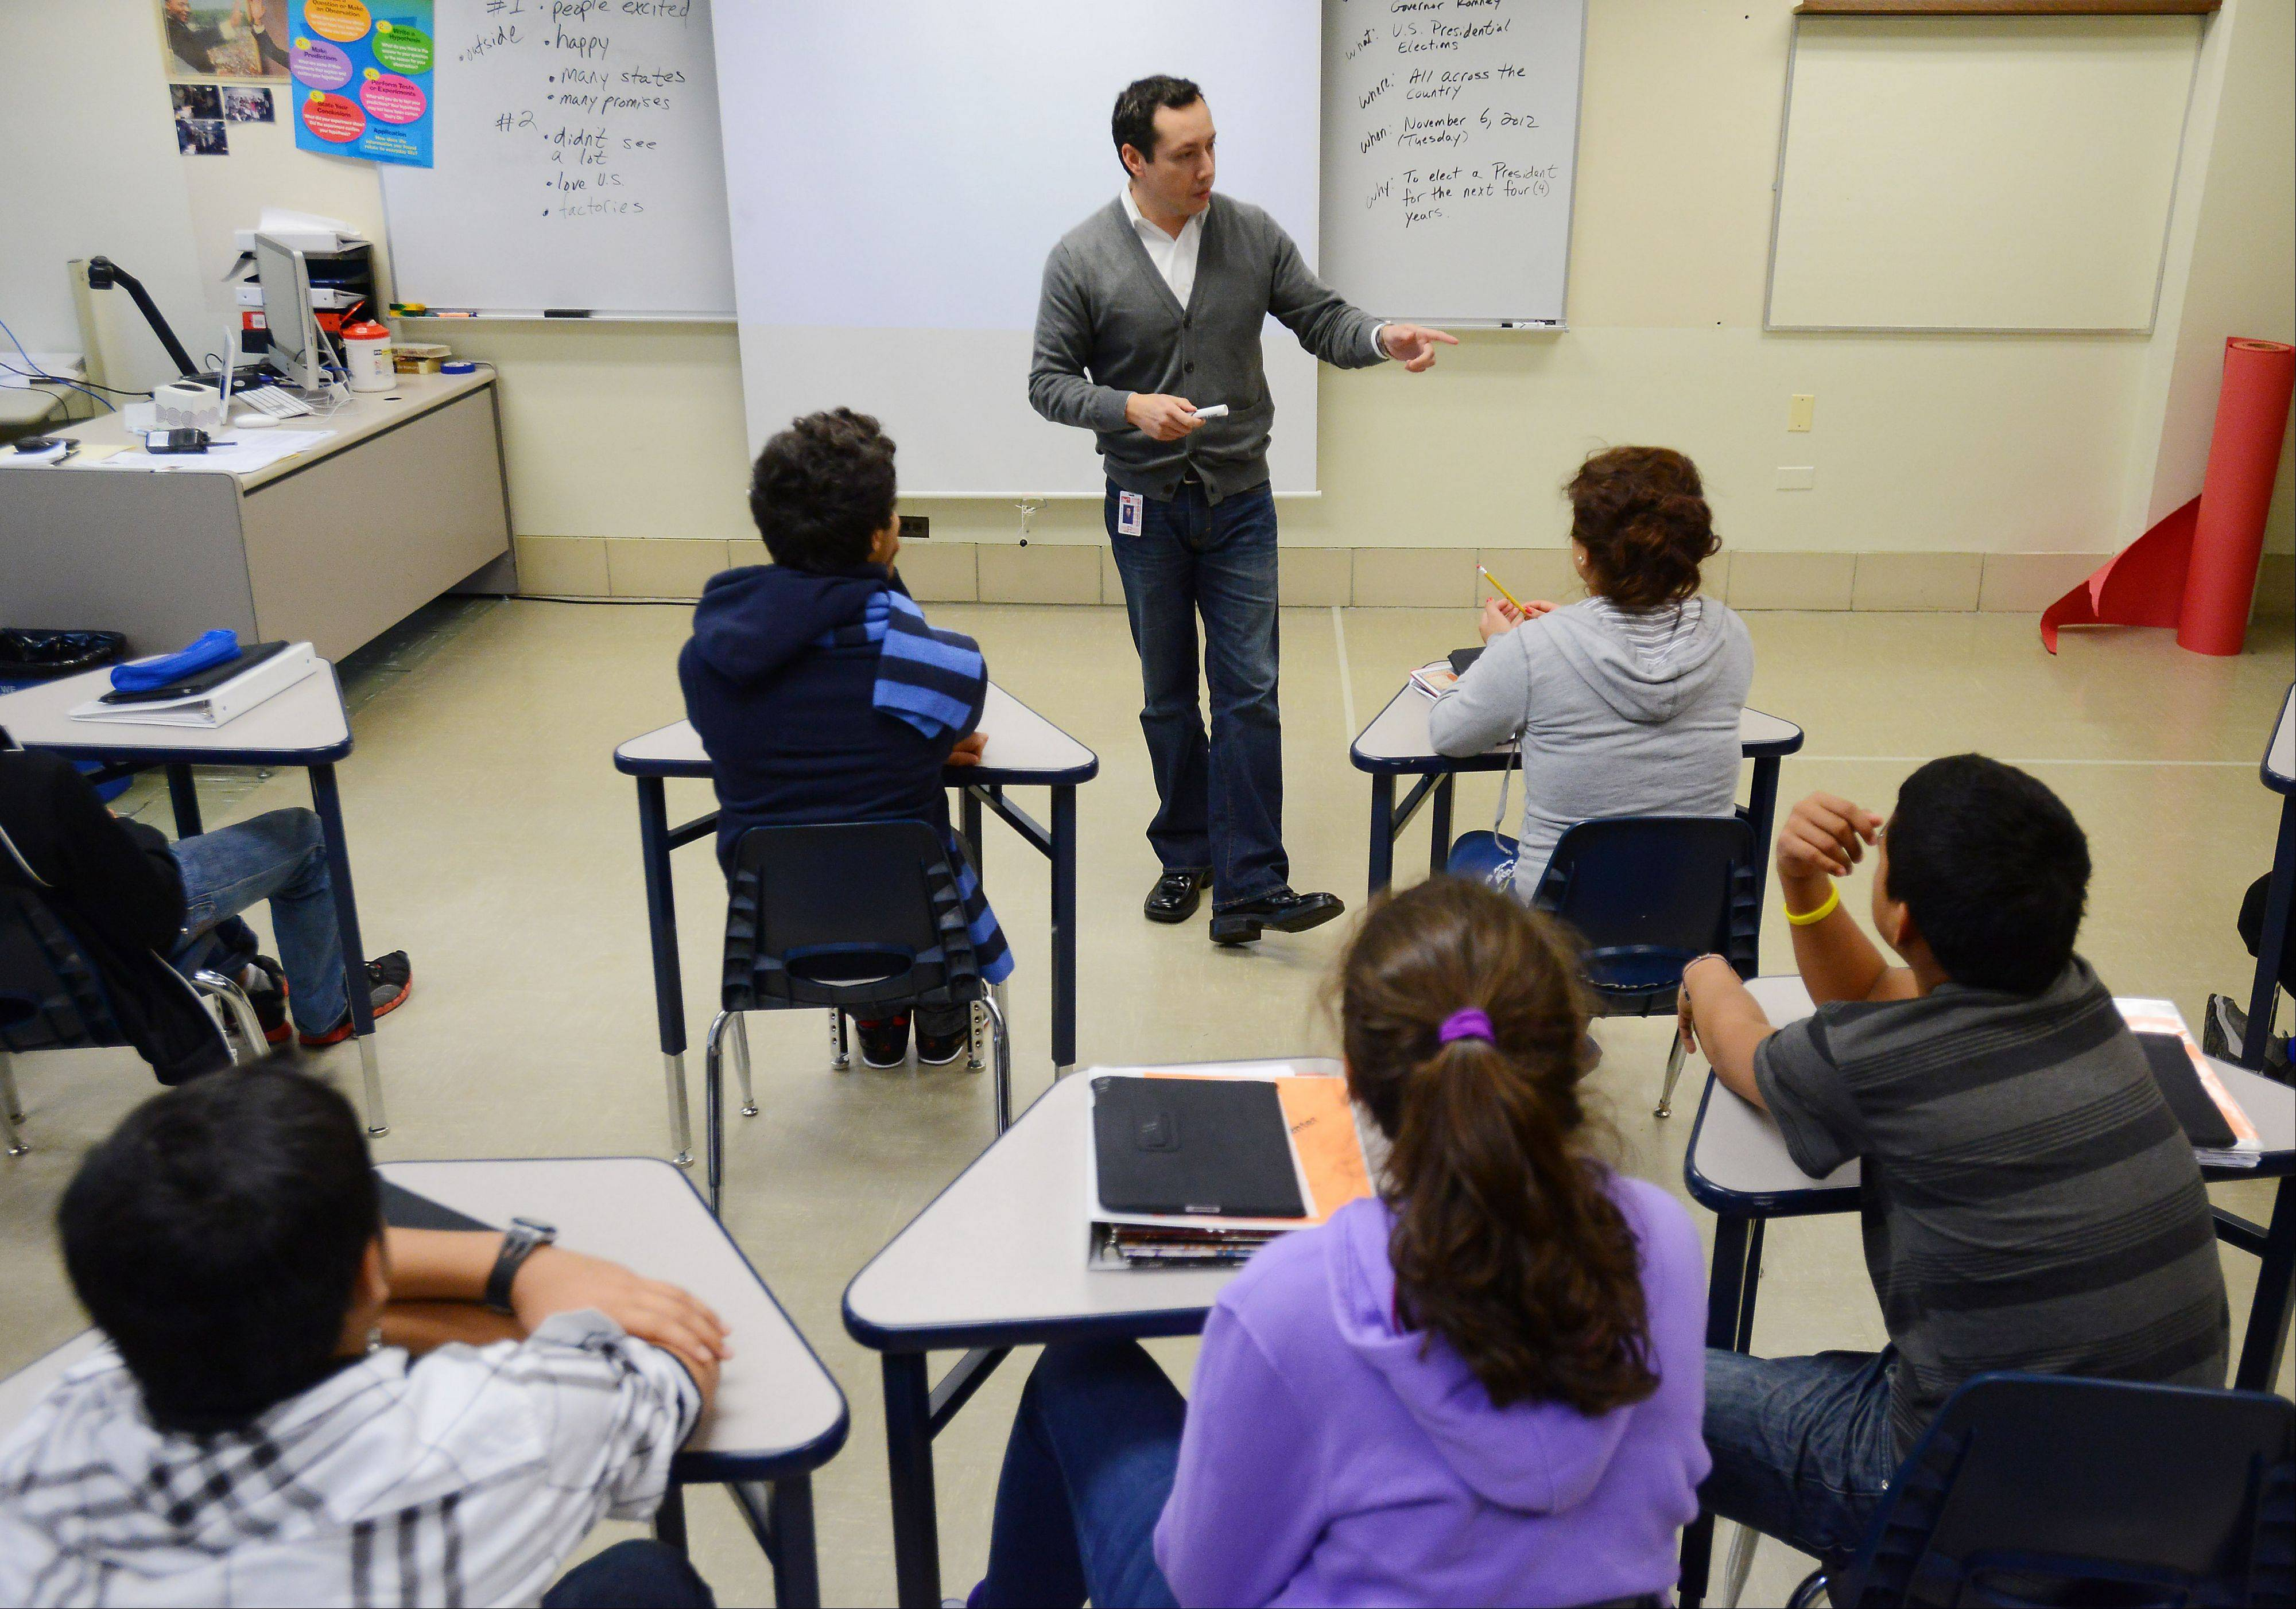 District 214 students new to the U.S. study at the Newcomer Center in Arlington Heights, where they take Mario Perez's social science class, among others. Students stay at the Center for one or two semesters before moving to their regular high school.